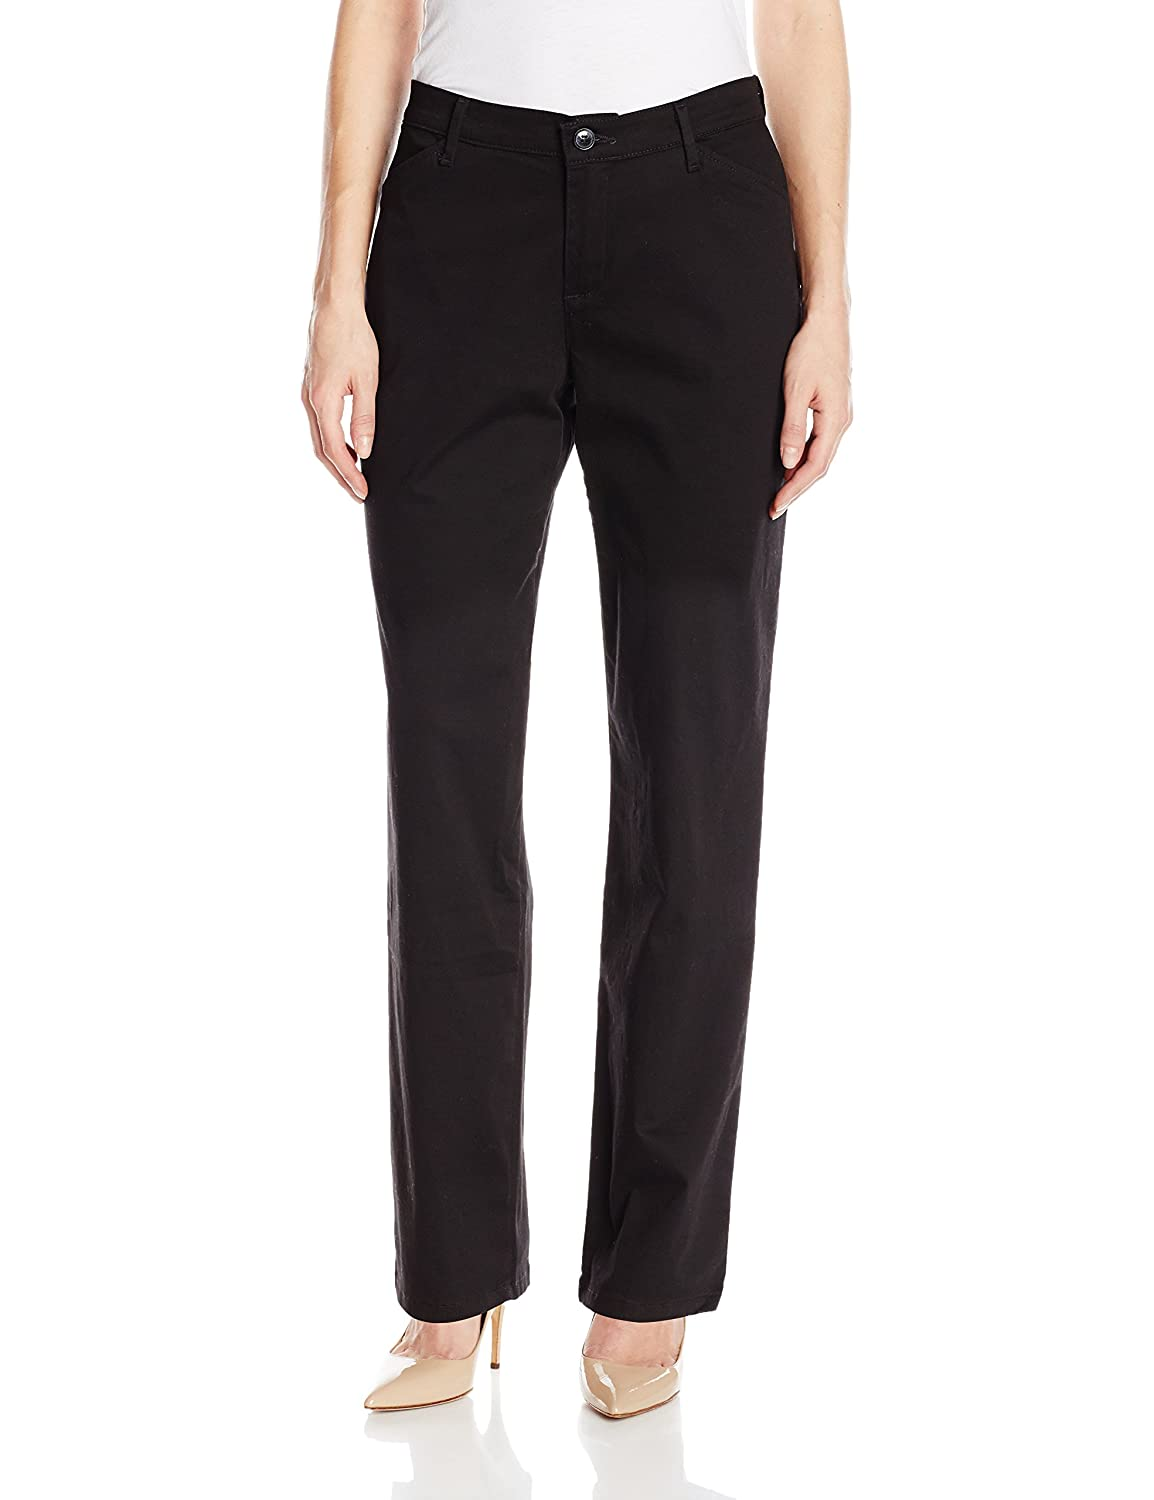 Lee Women's Tall Relaxed-Fit All Day Pant